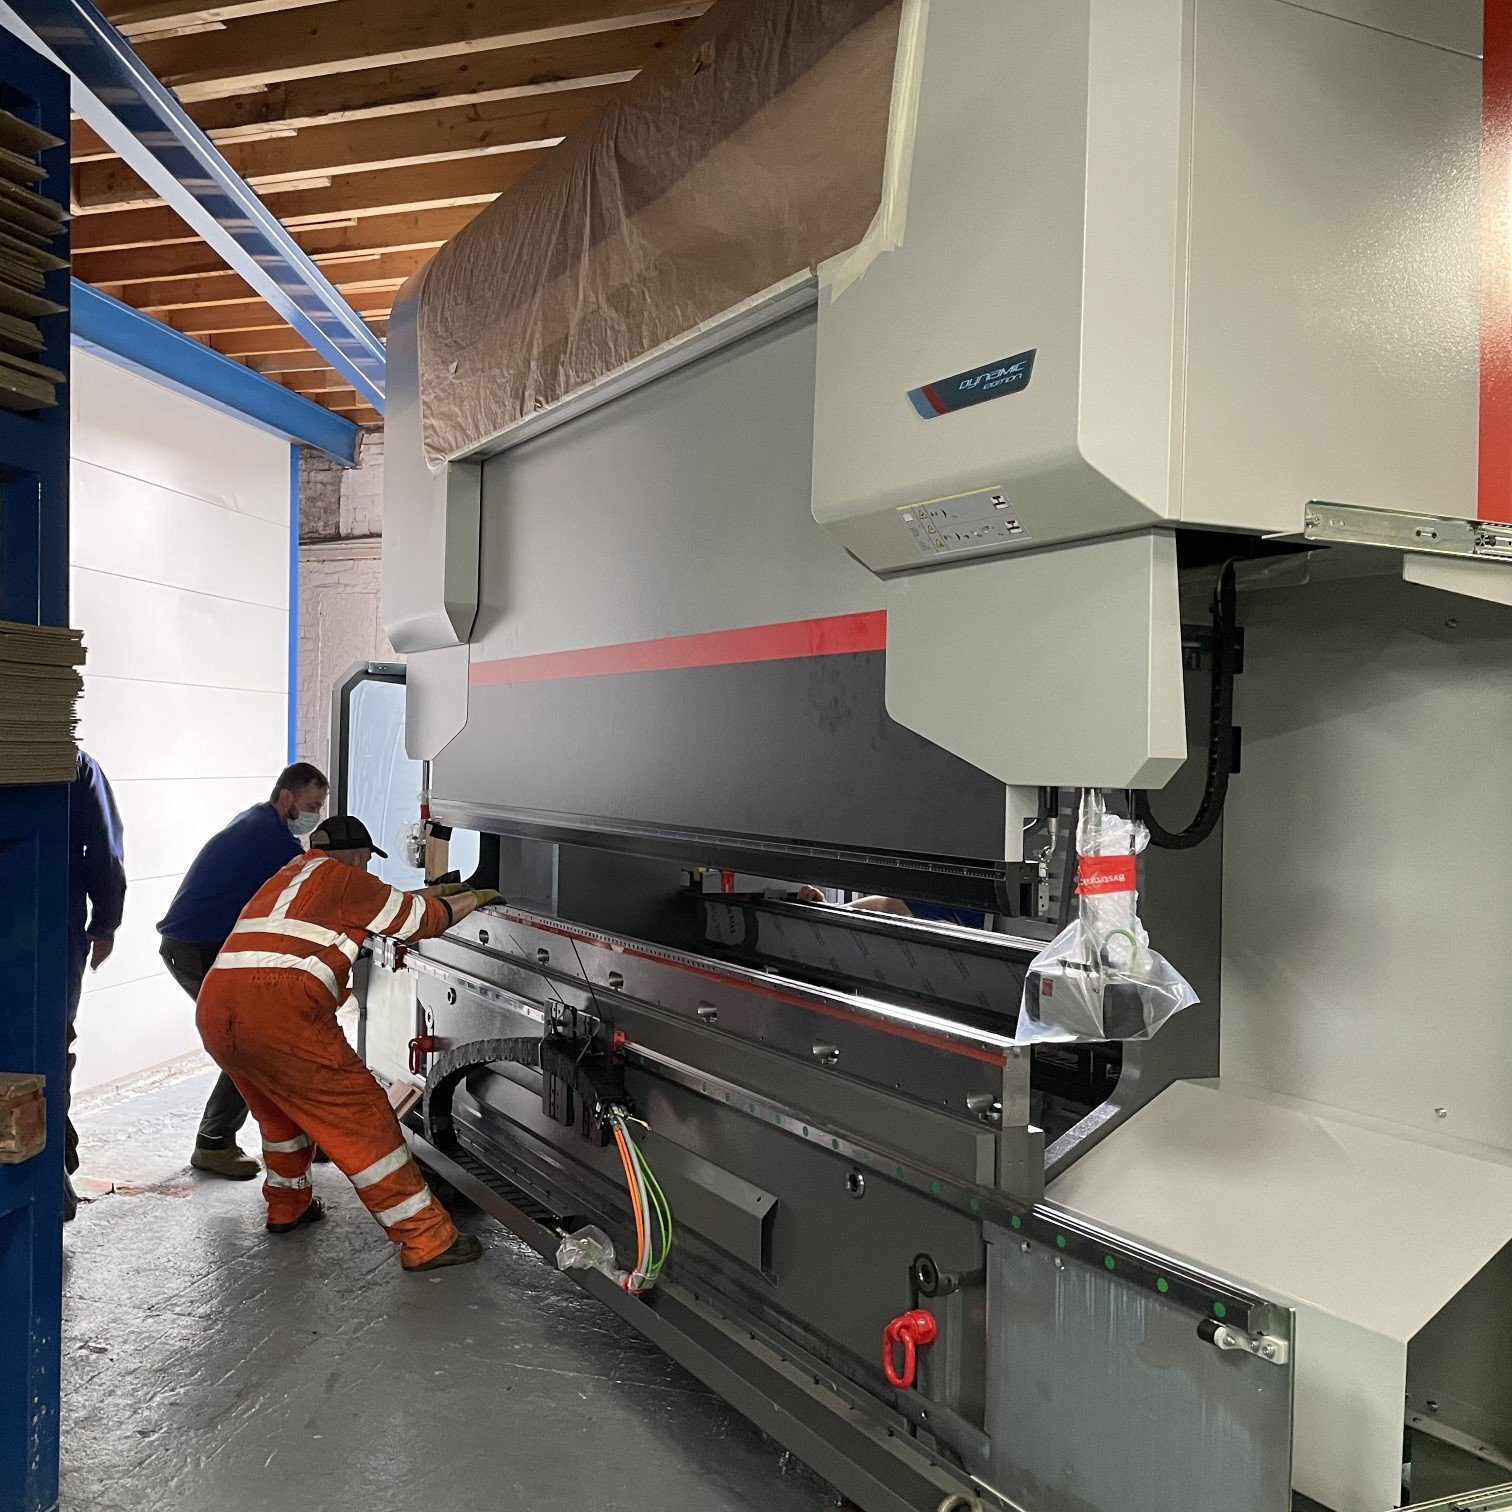 Precision bending- All hands on deck, getting the press brake through the doors